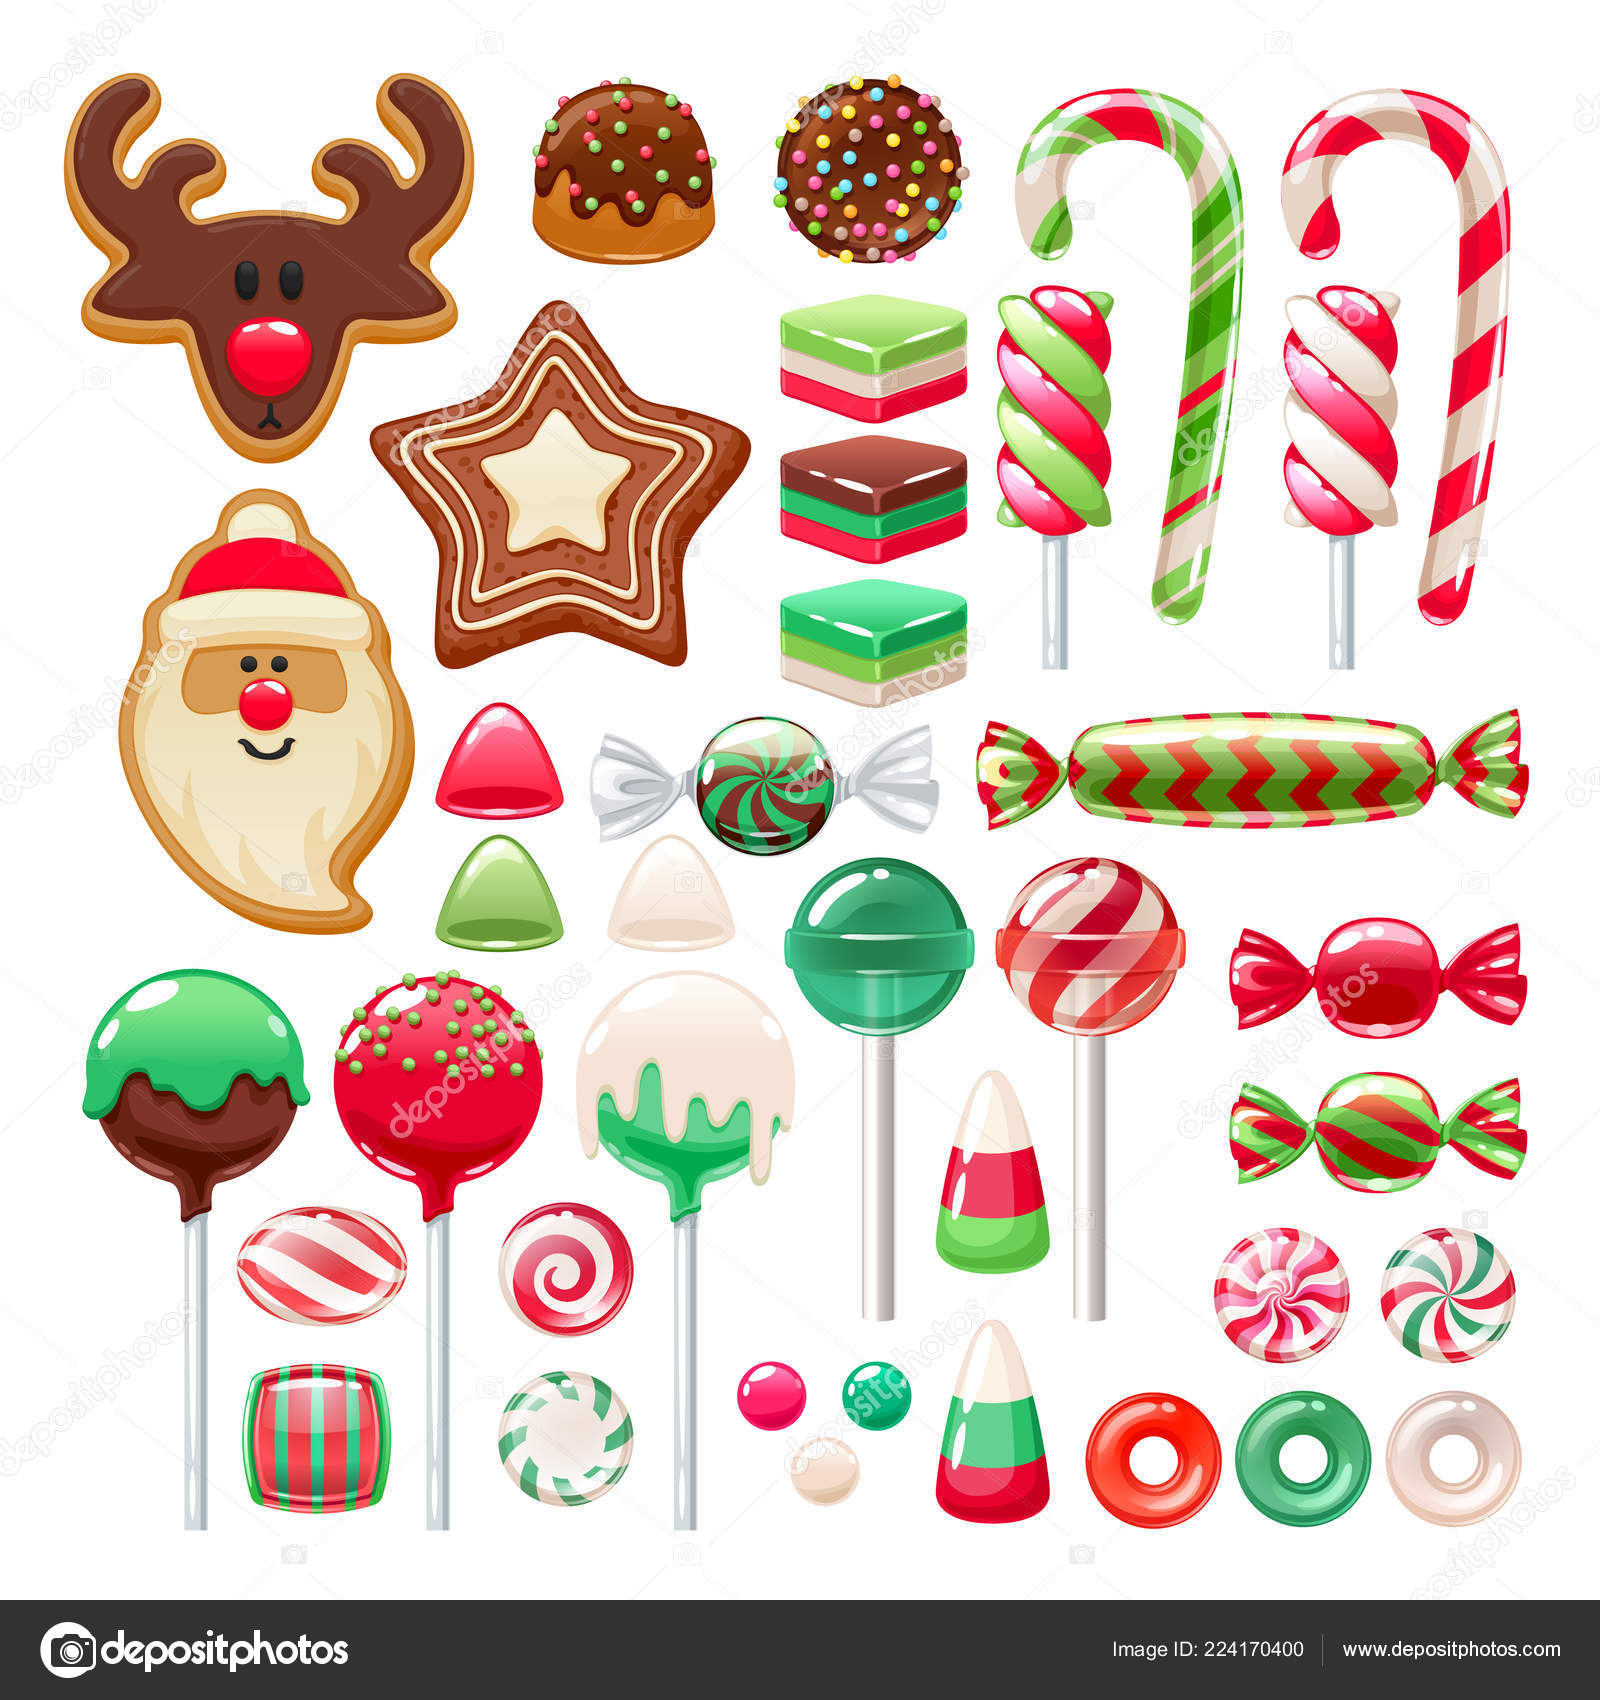 Christmas Sweets.Christmas Sweets Set Assorted Candies And Cookies Stock